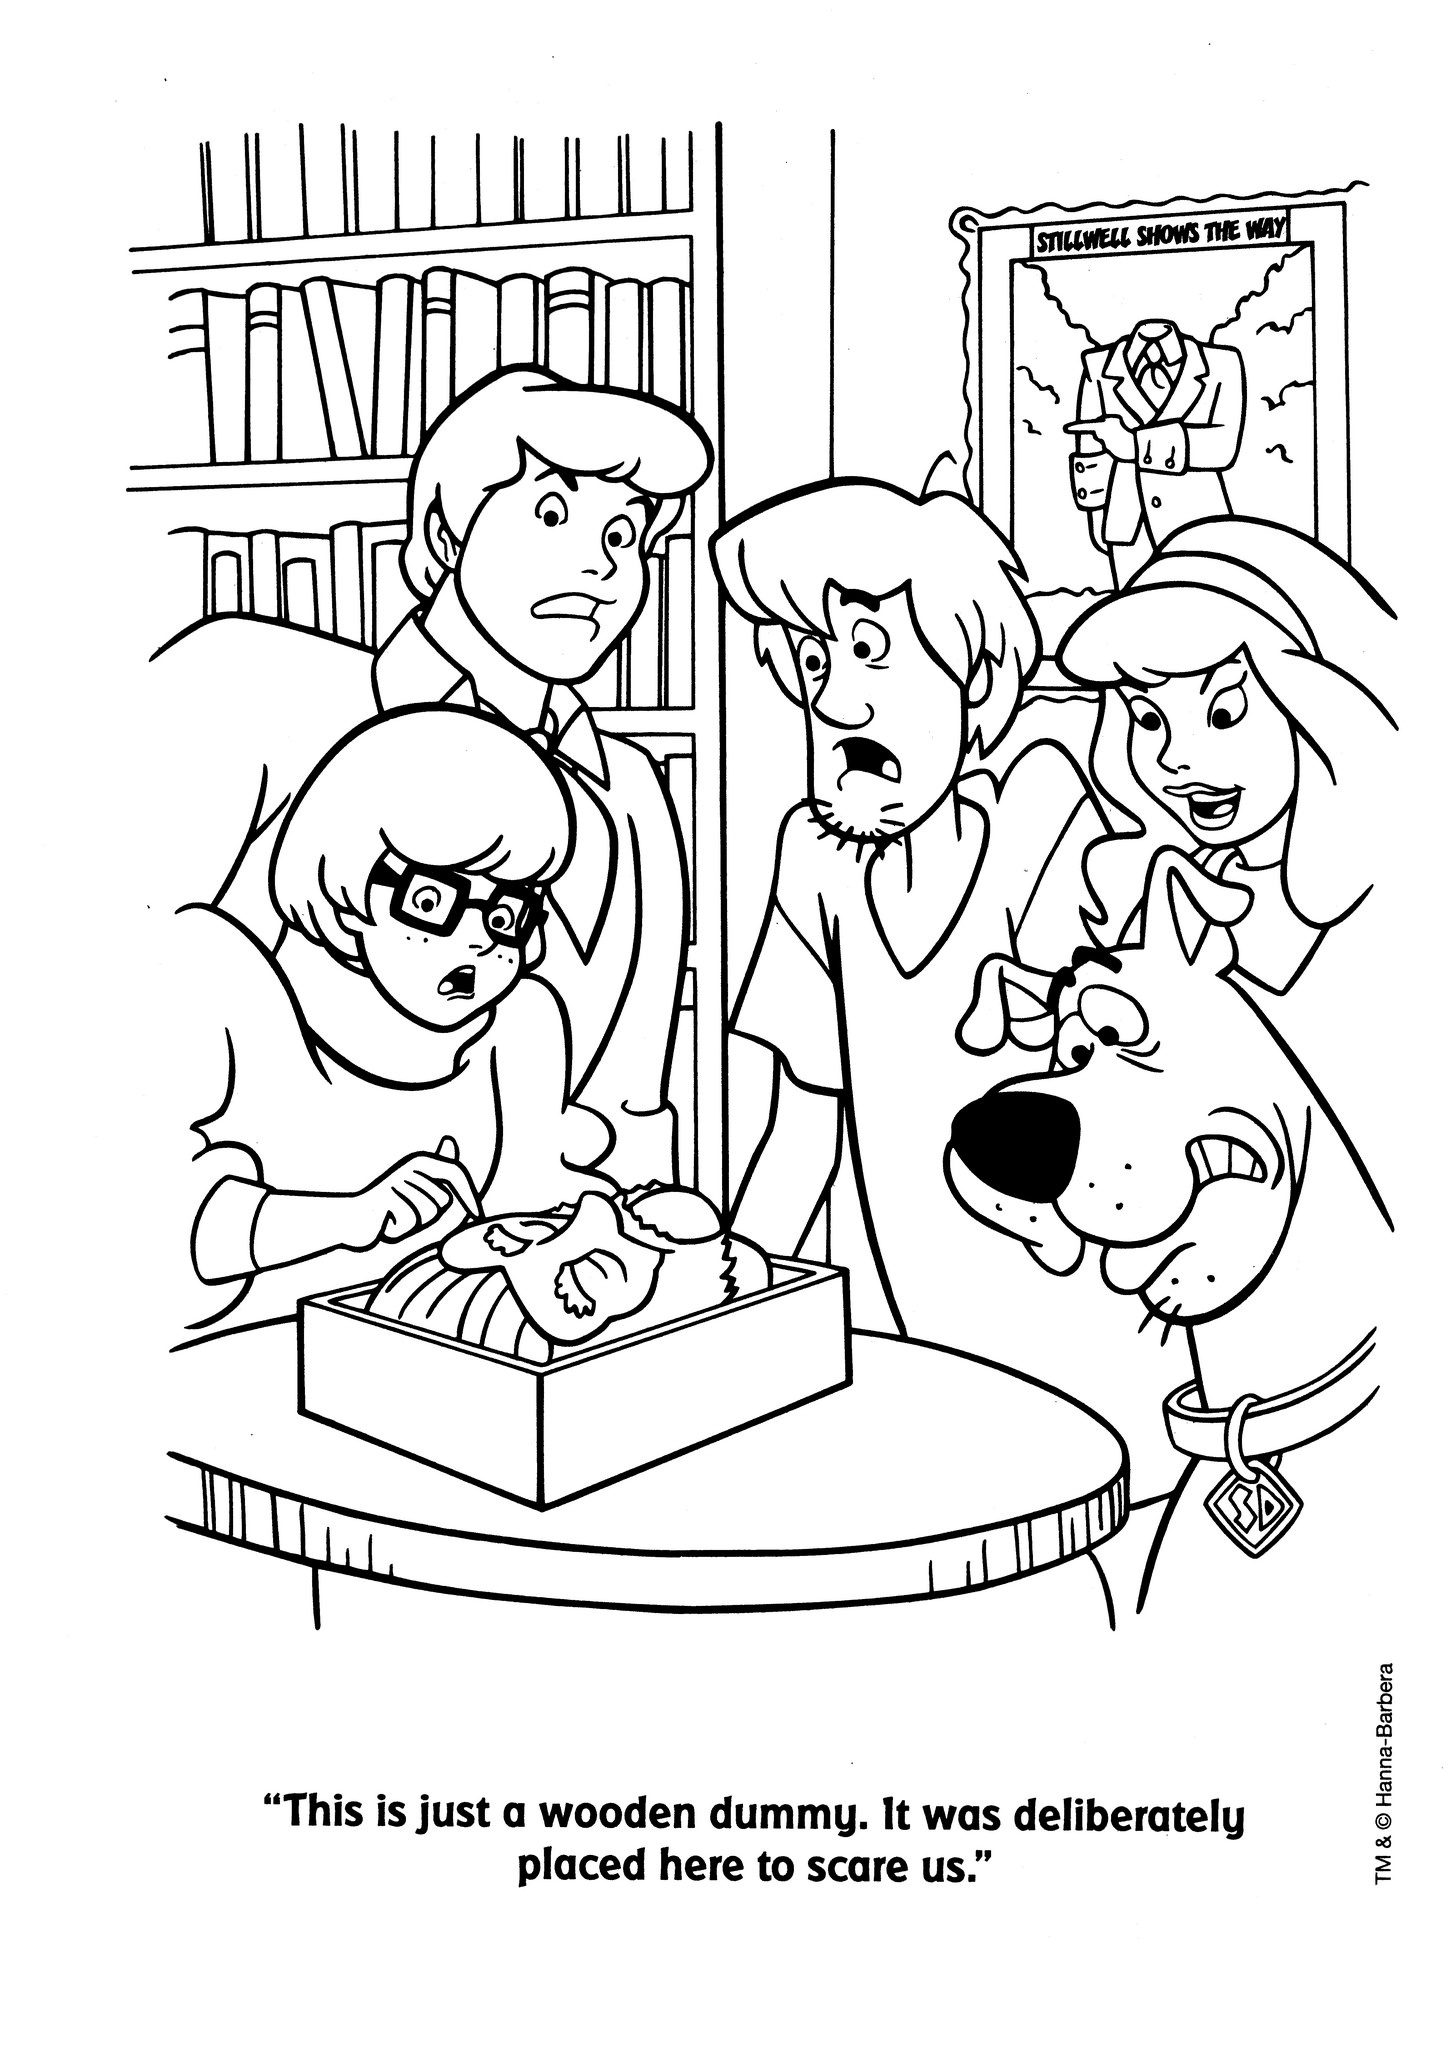 scooby doo characters coloring pages scooby doo free to color for kids scooby doo kids scooby coloring pages doo characters